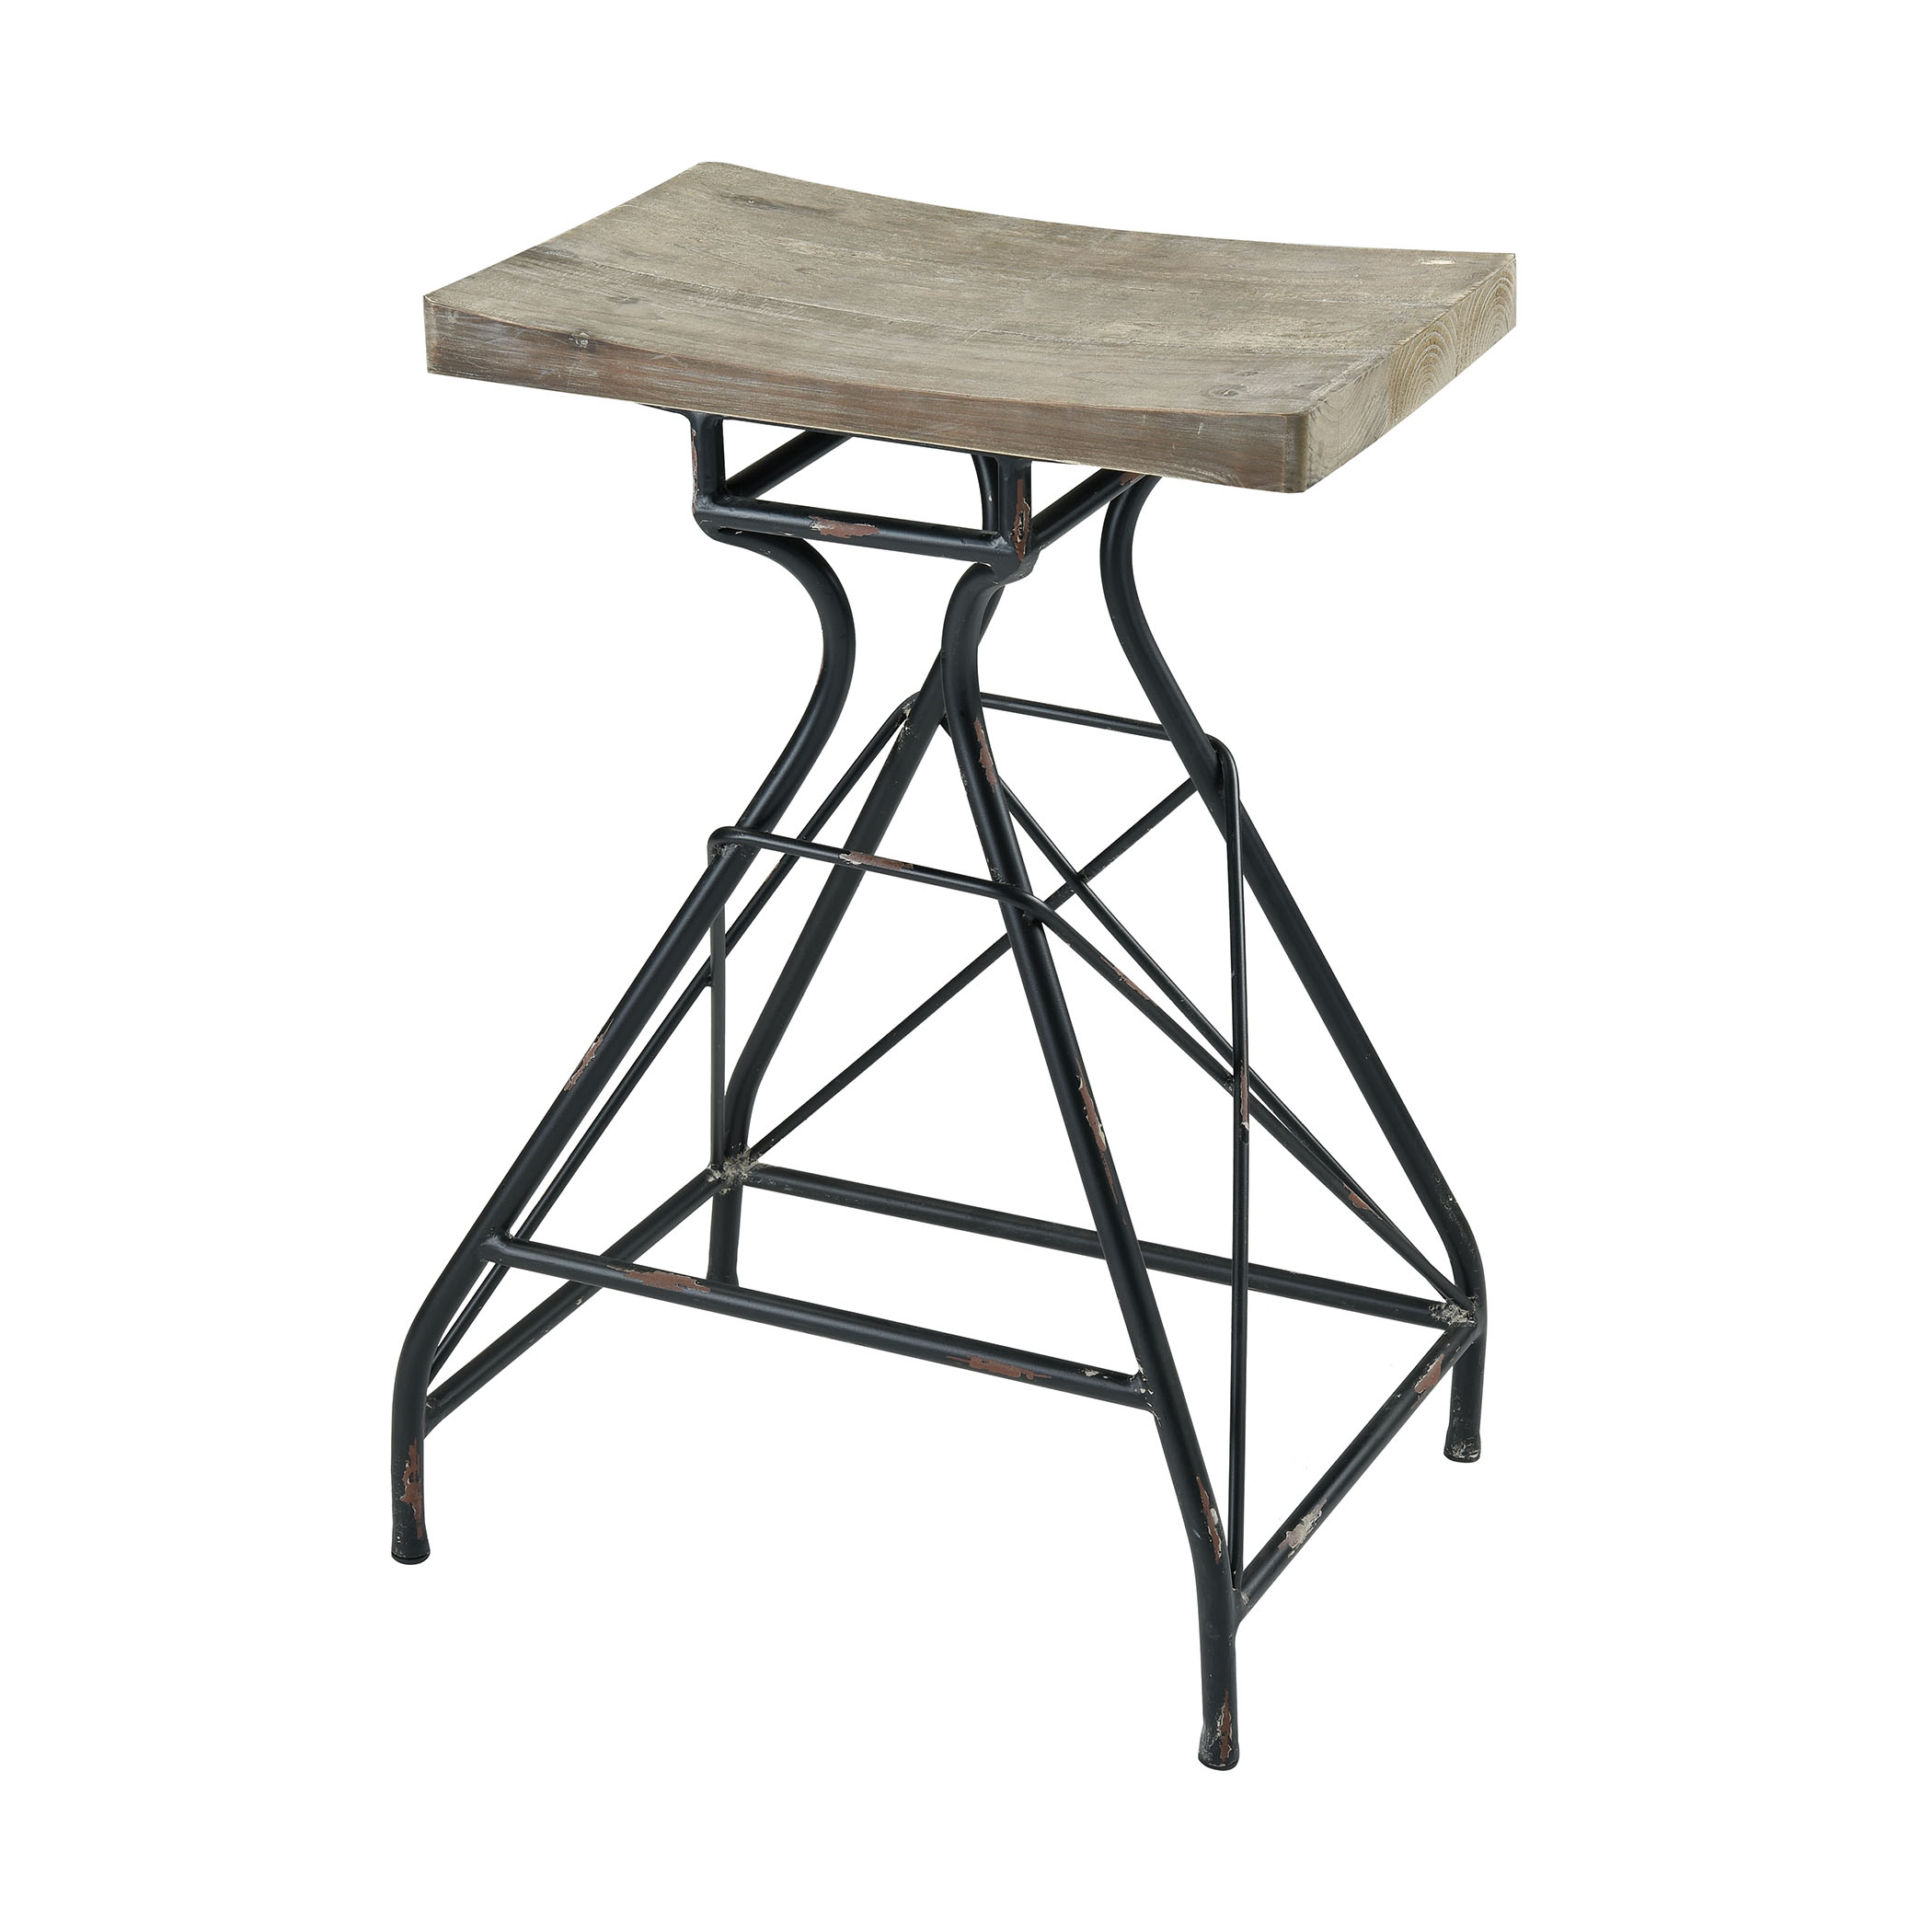 Paloma Bar Stool in Natural Wood and Dark Bronze | Elk Home